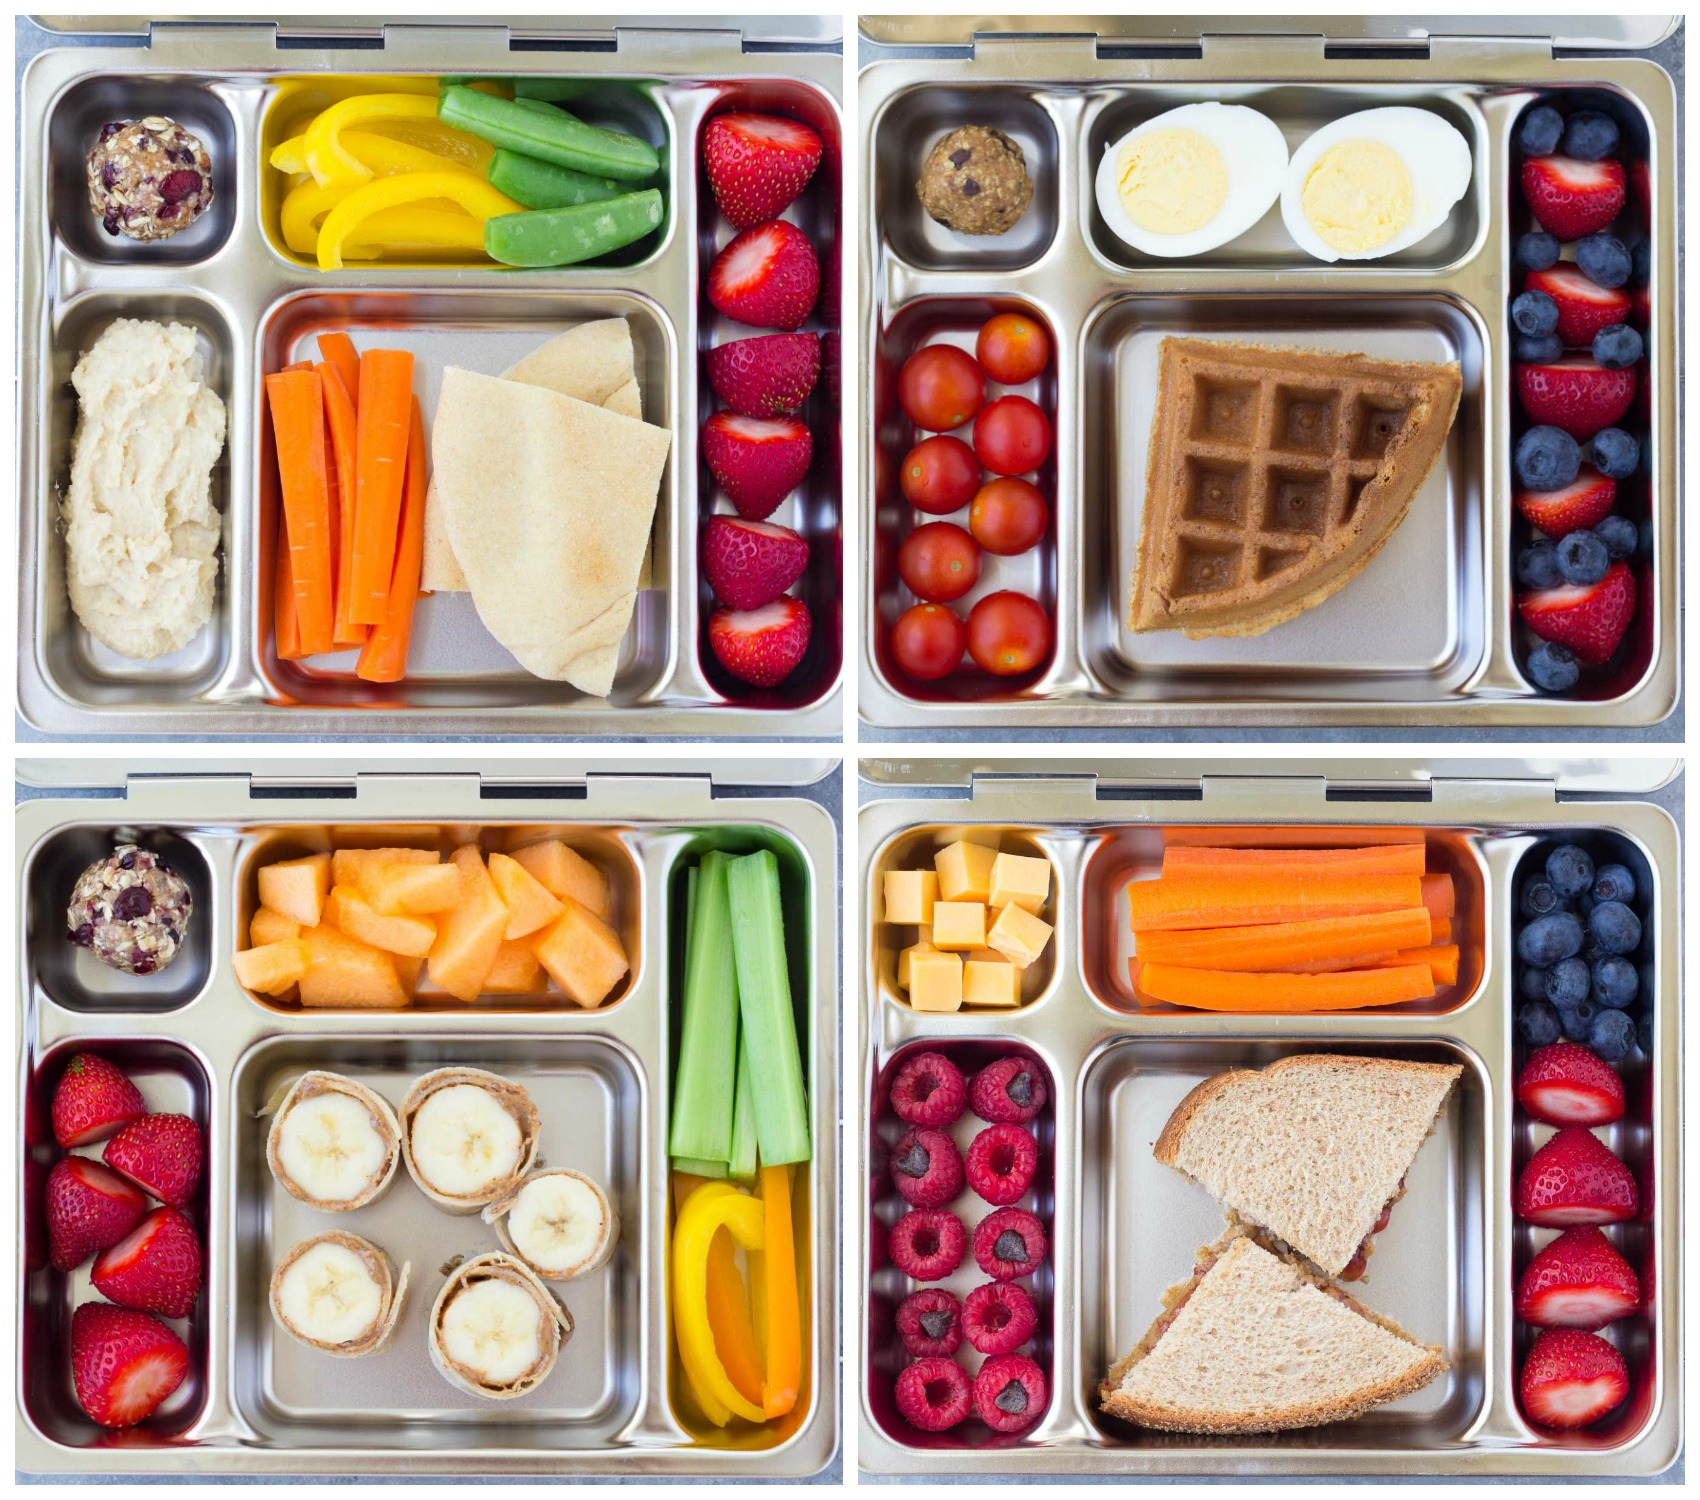 healthy school lunch idea examples with waffle, sandwiches, carrots, eggs, berries, fruits and other items